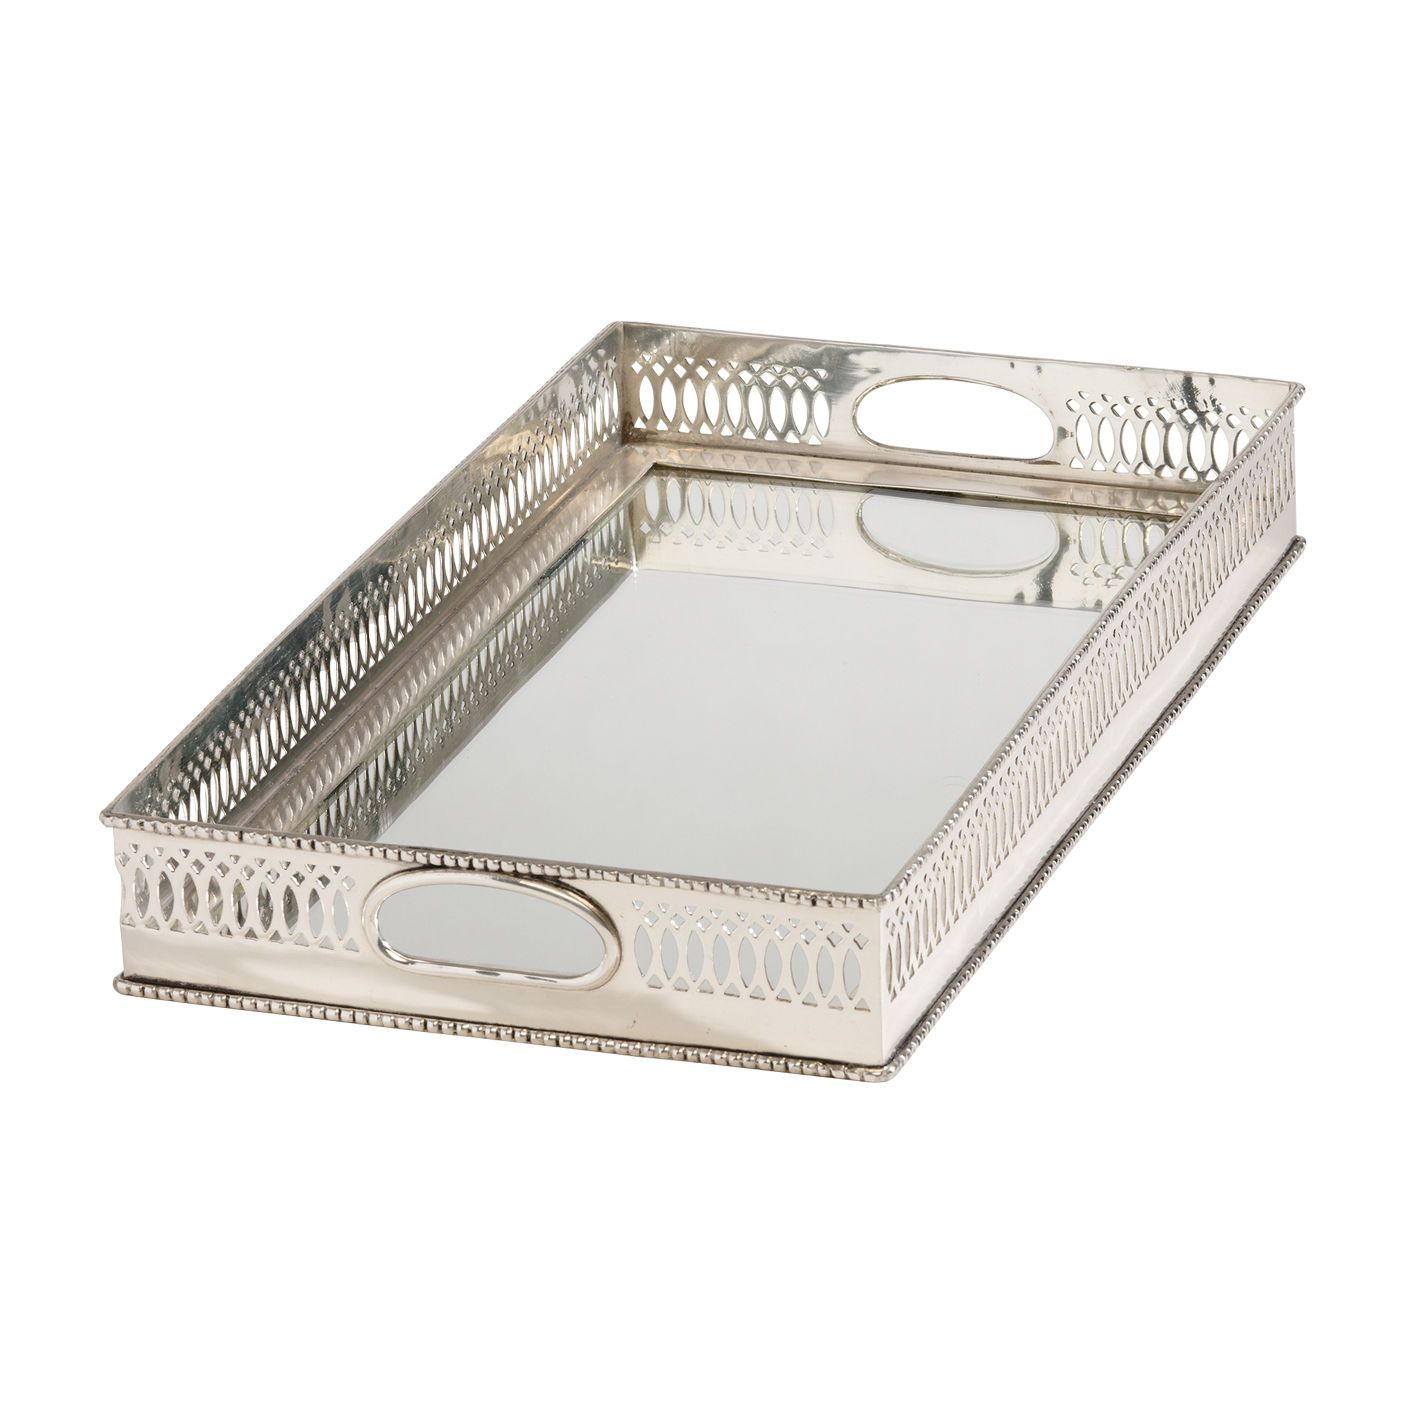 Home Decor Trays Silver Home Decortraditional Mirrored Silver Tray  Ethan Allen